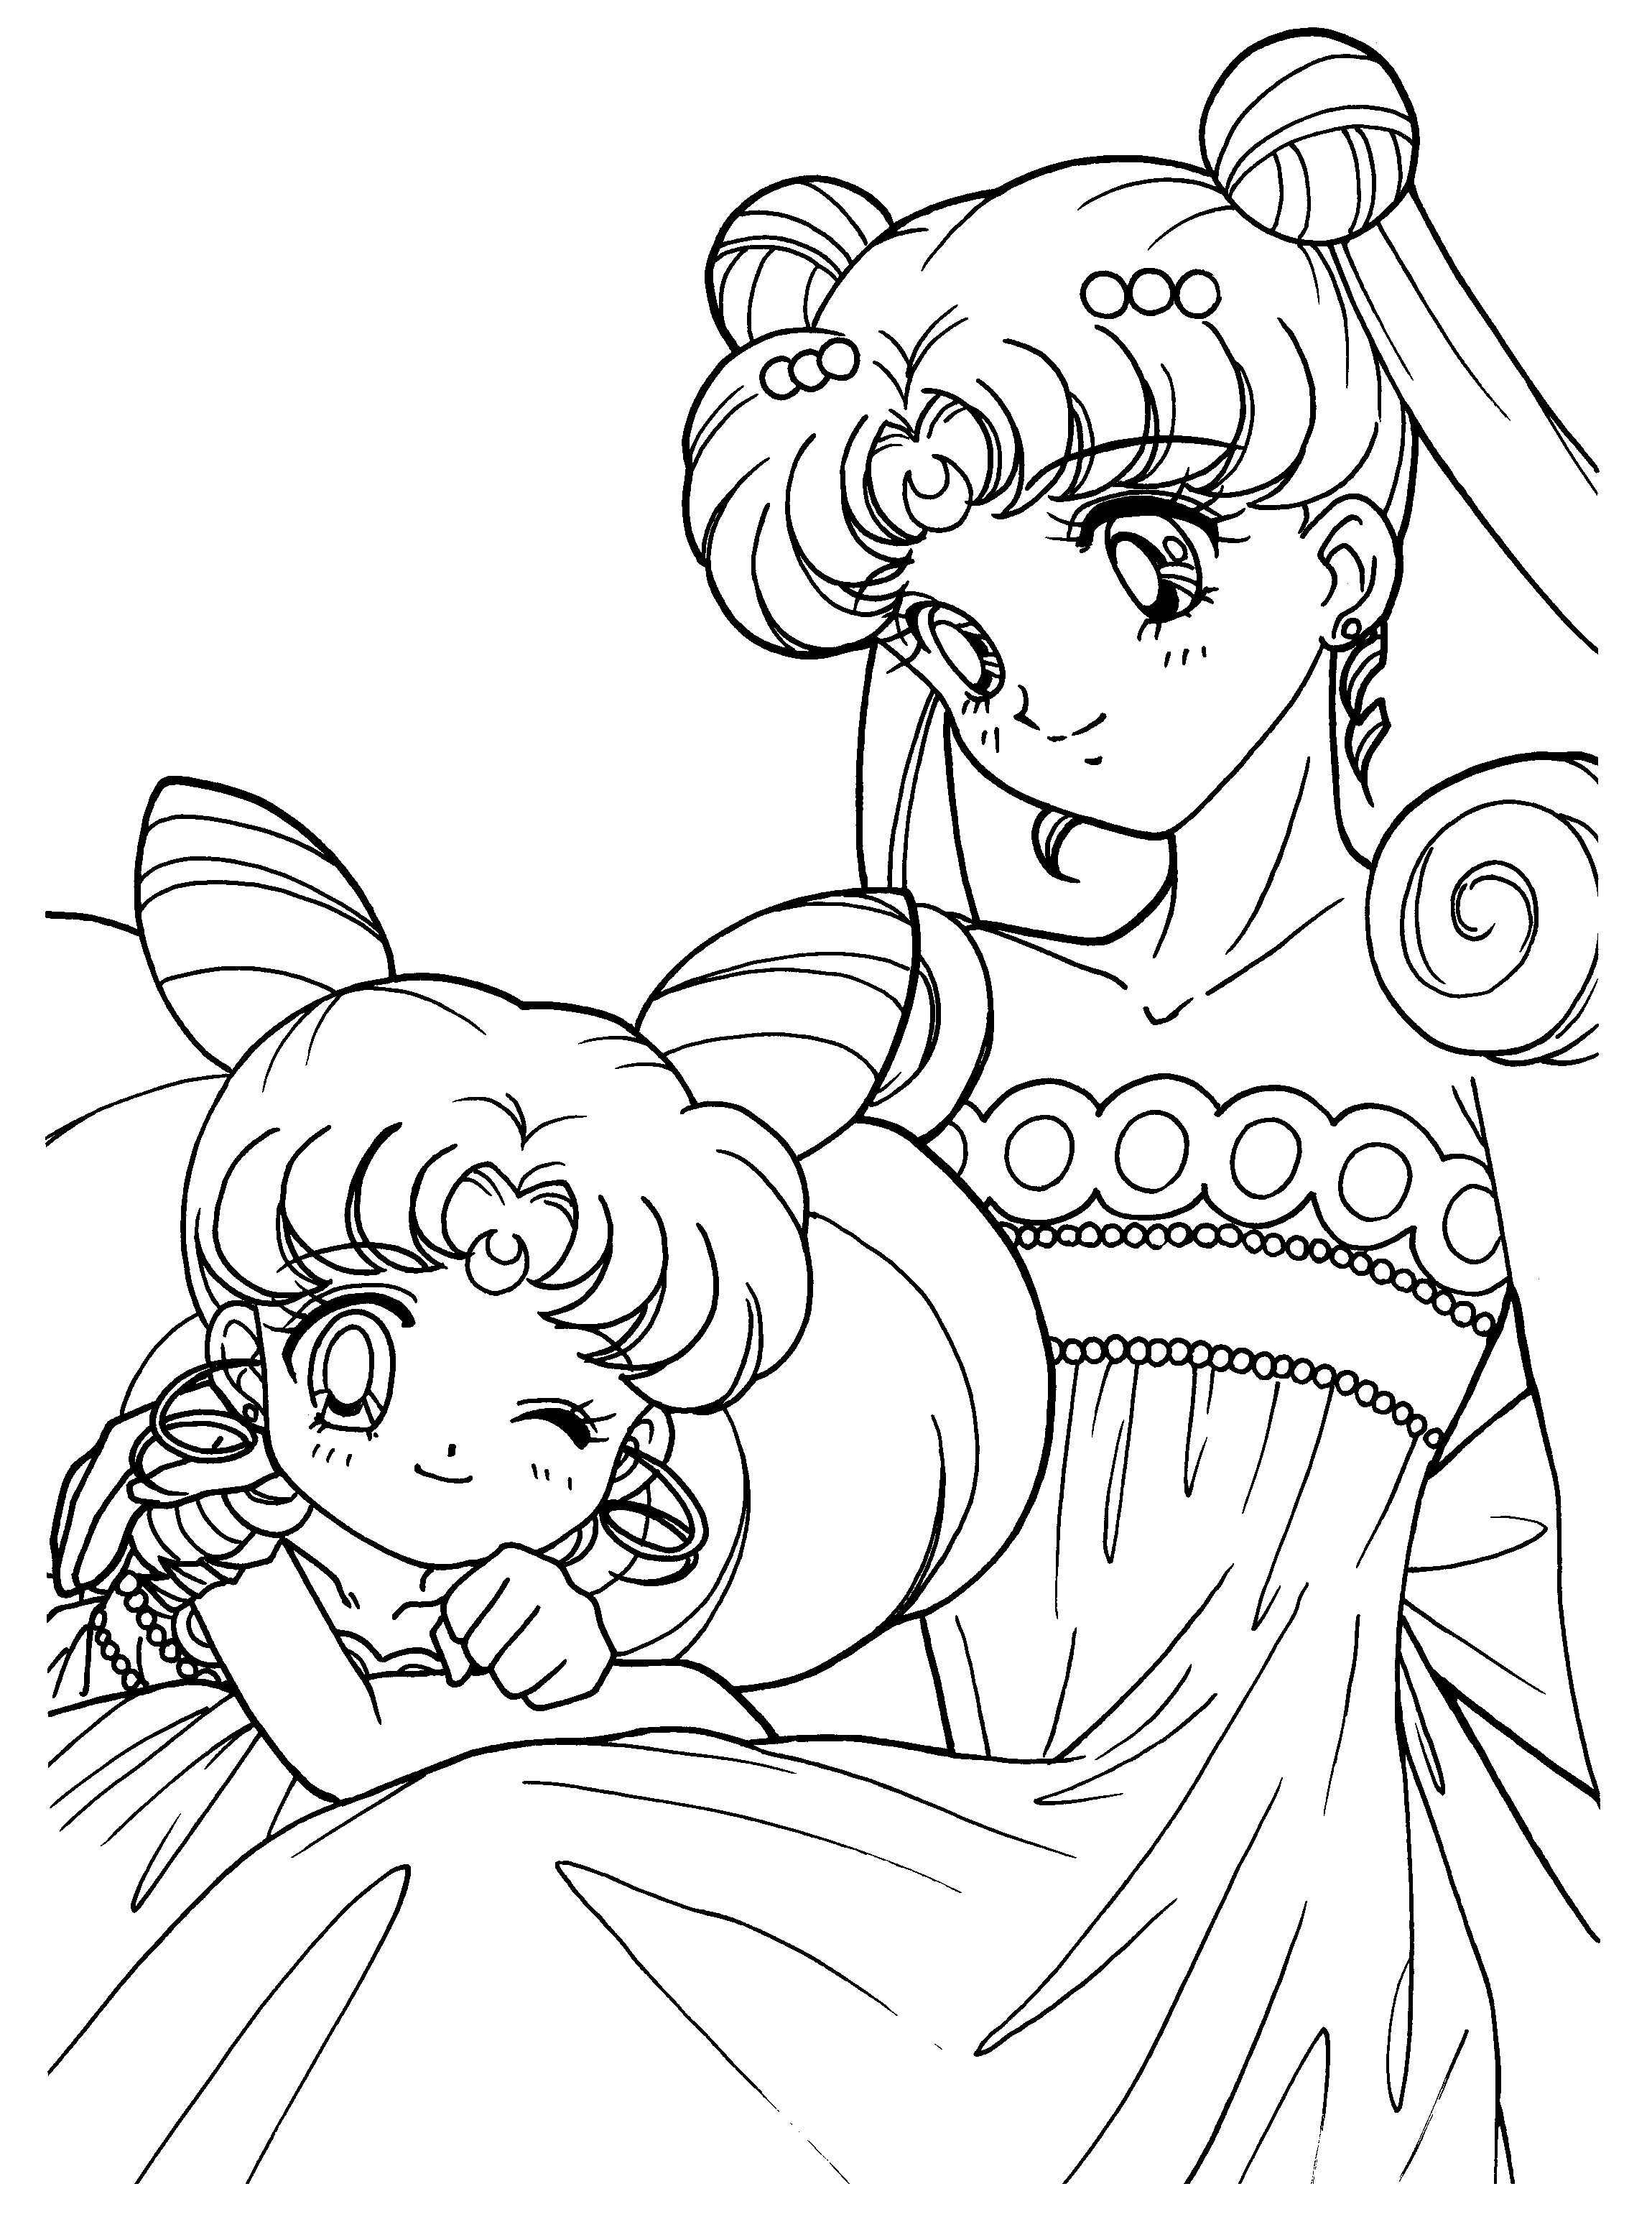 sailor moon online coloring pages - photo#3